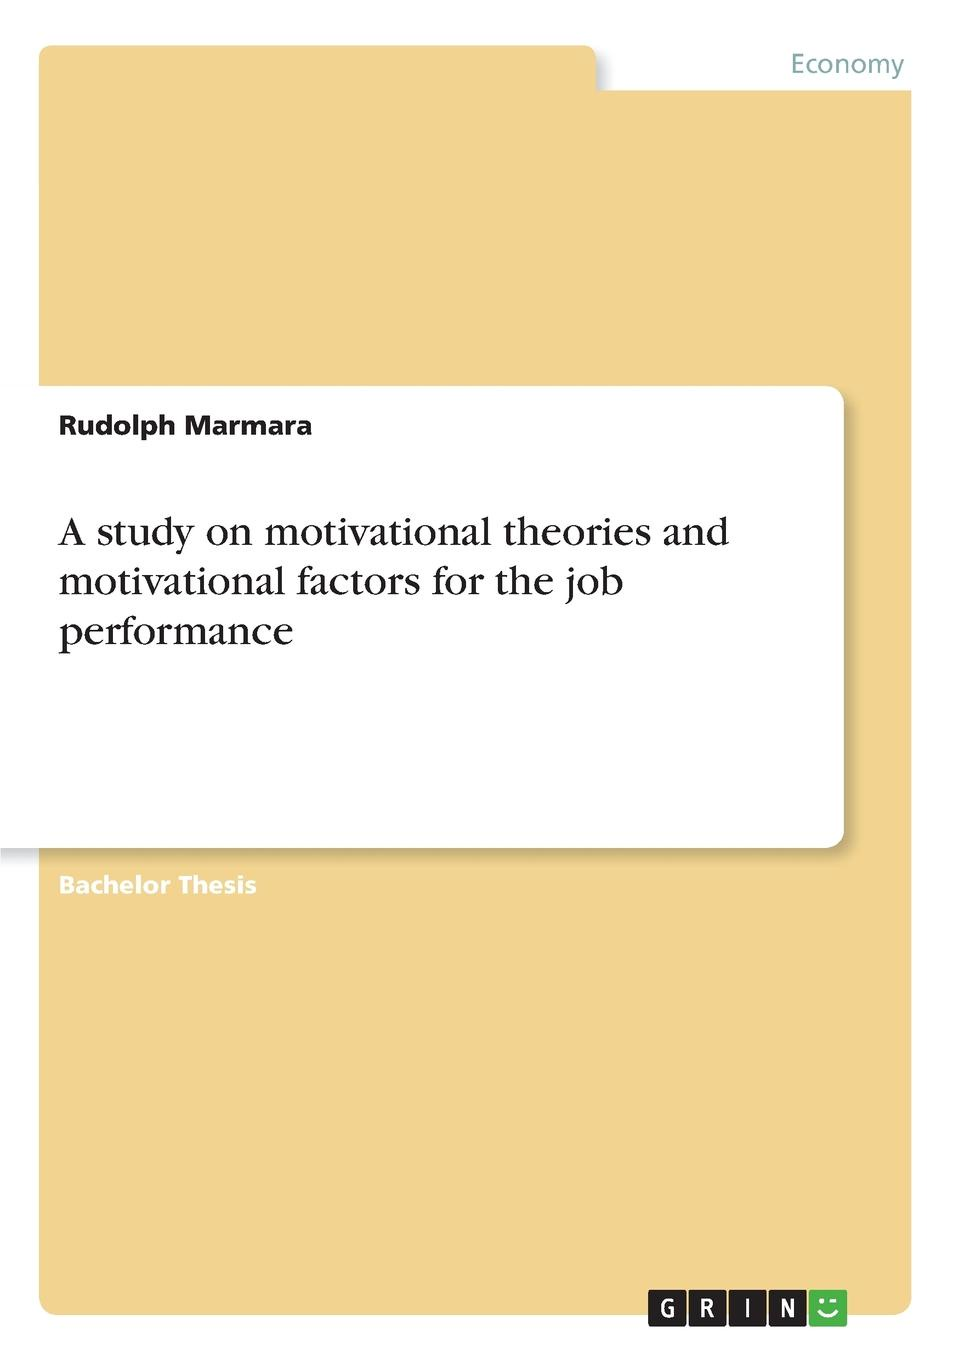 Rudolph Marmara A study on motivational theories and motivational factors for the job performance rustamov rustam b samadova nargiz e motivation factors impact in management review and approach